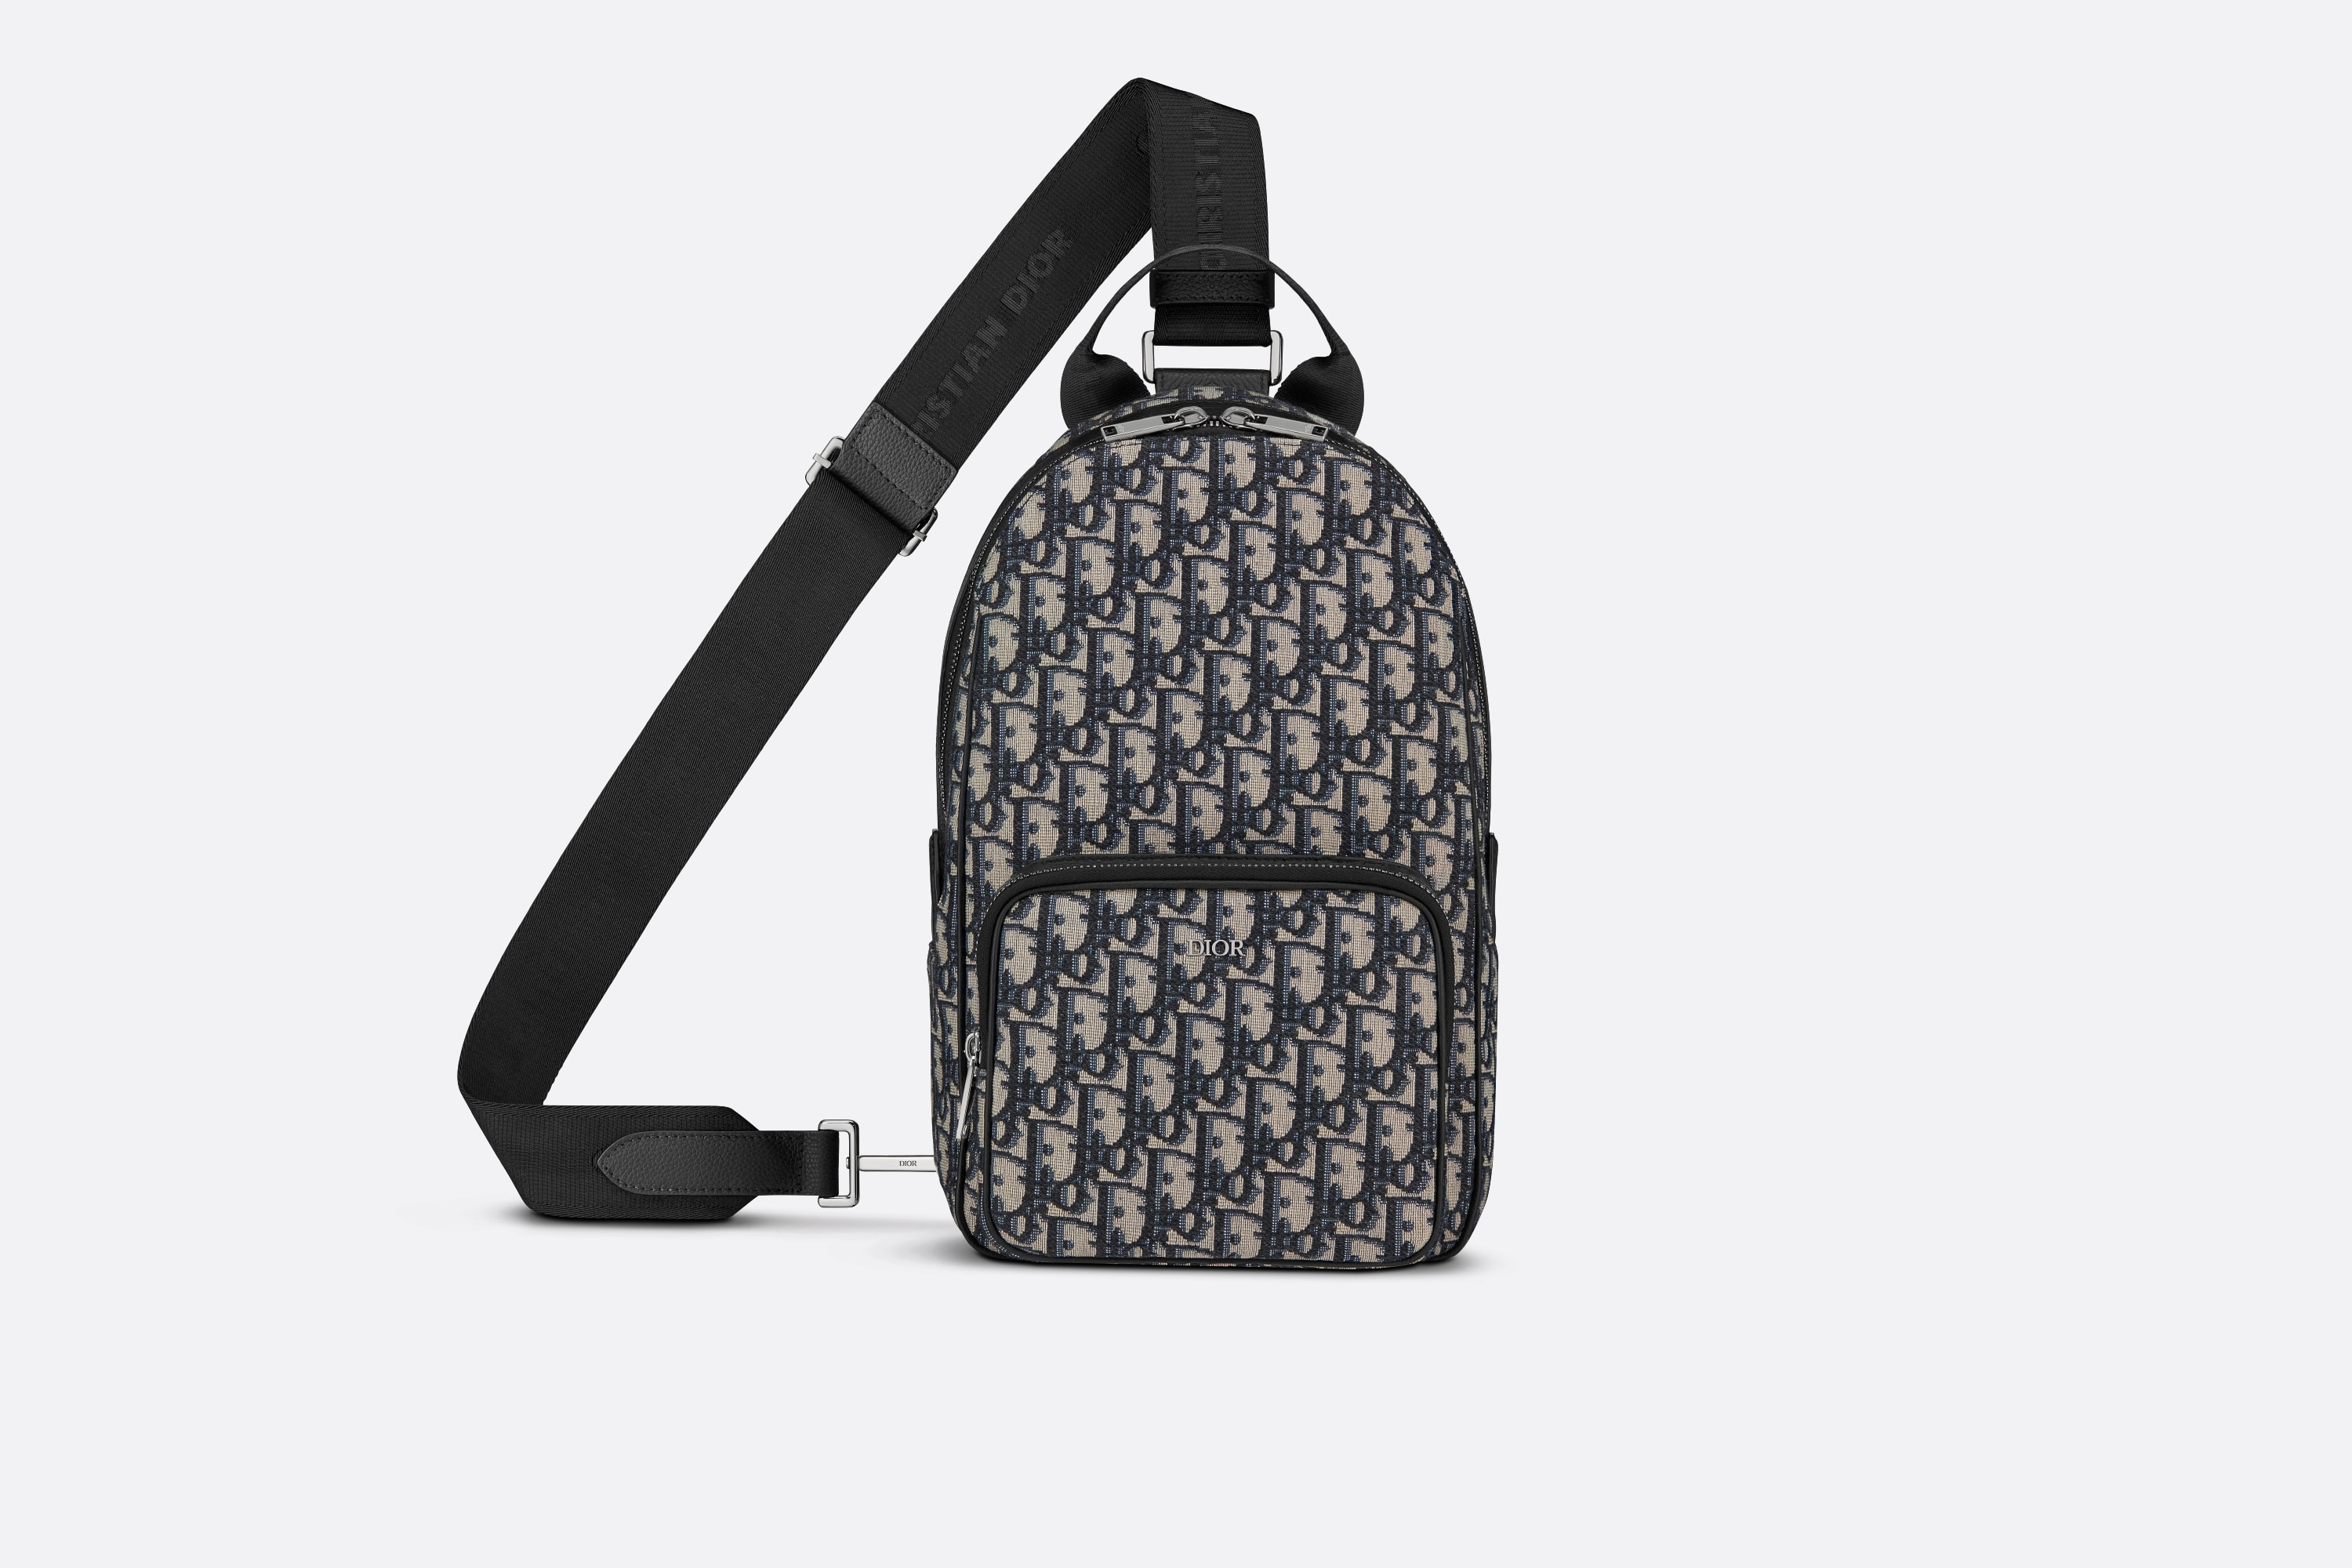 Crossbody Backpack Beige And Black Dior Oblique Jacquard Leather Goods Man Dior